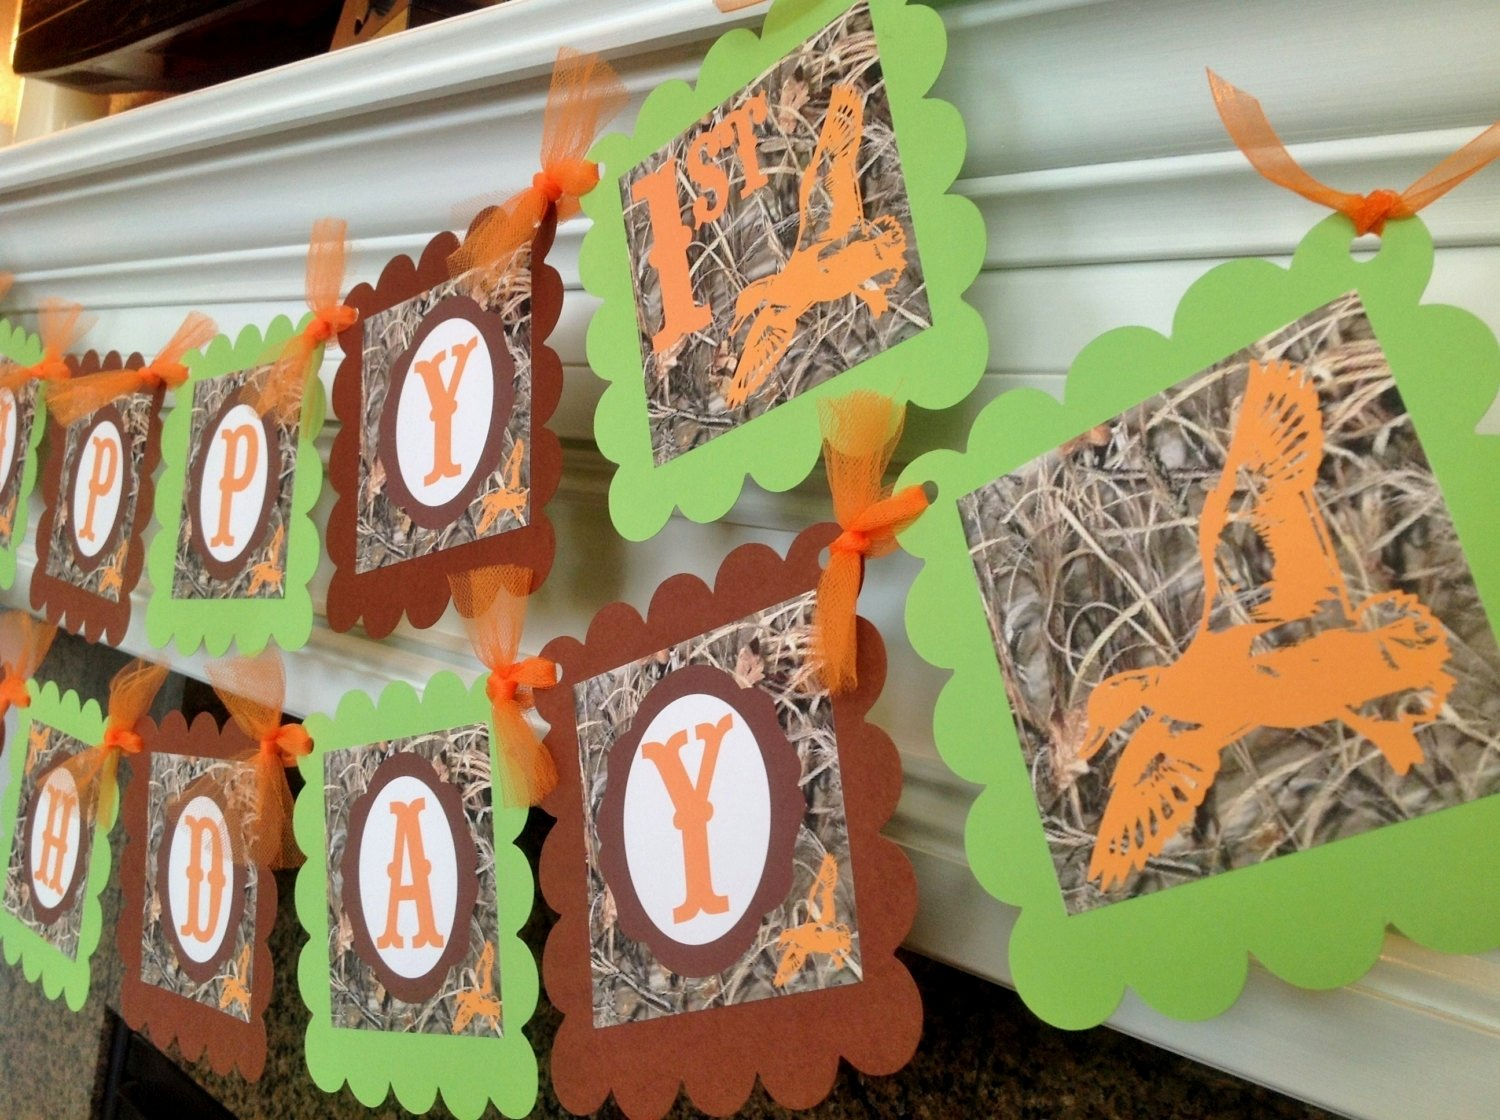 duck dynasty birthday party ideas - decorating of party